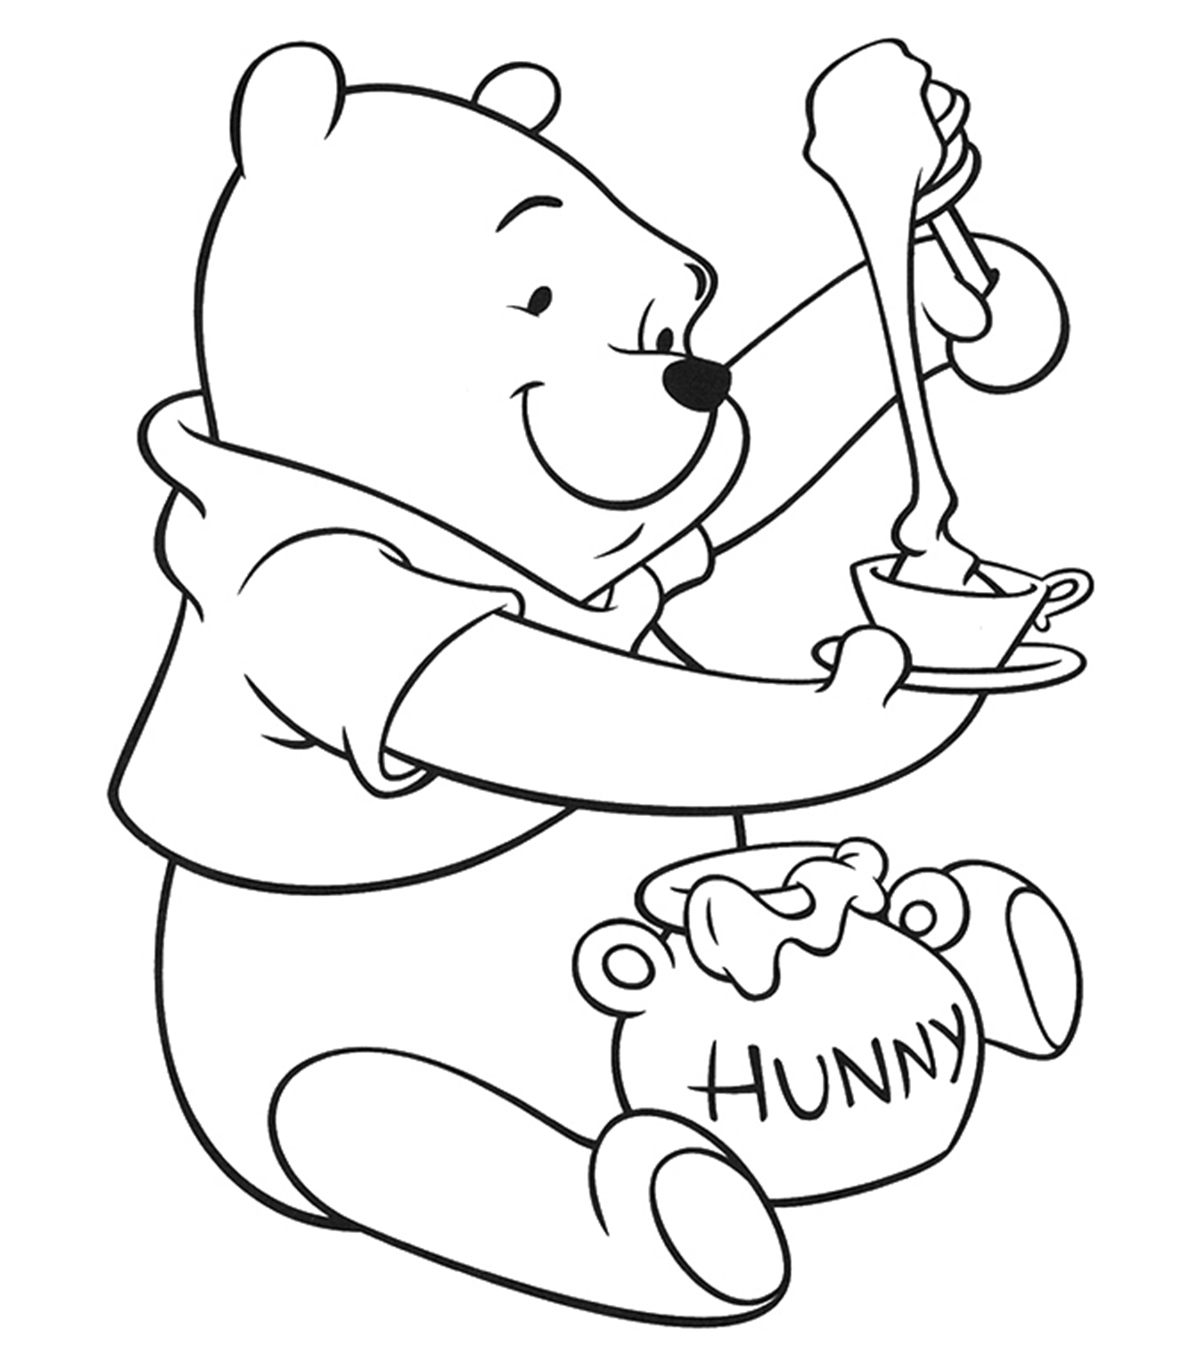 Top 10 free printable bear coloring pages online